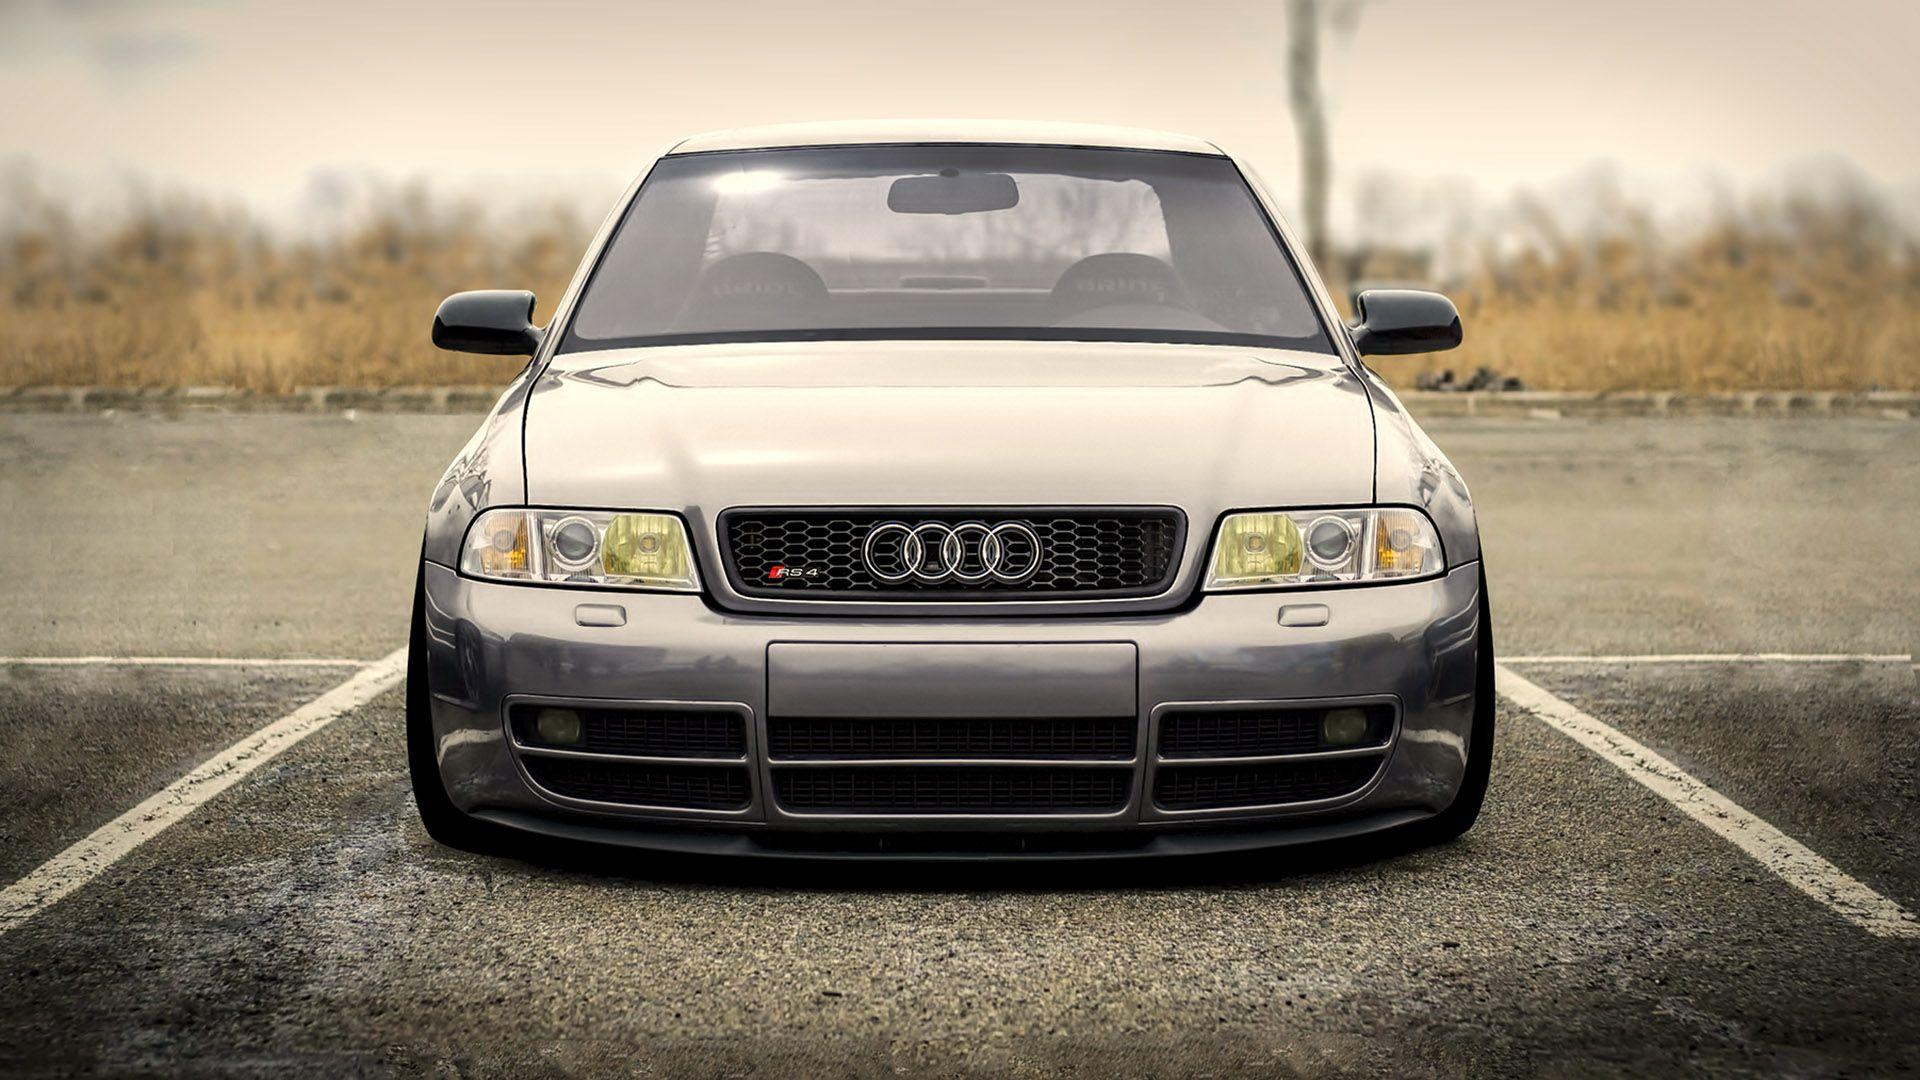 Audi S4 Wallpapers 17